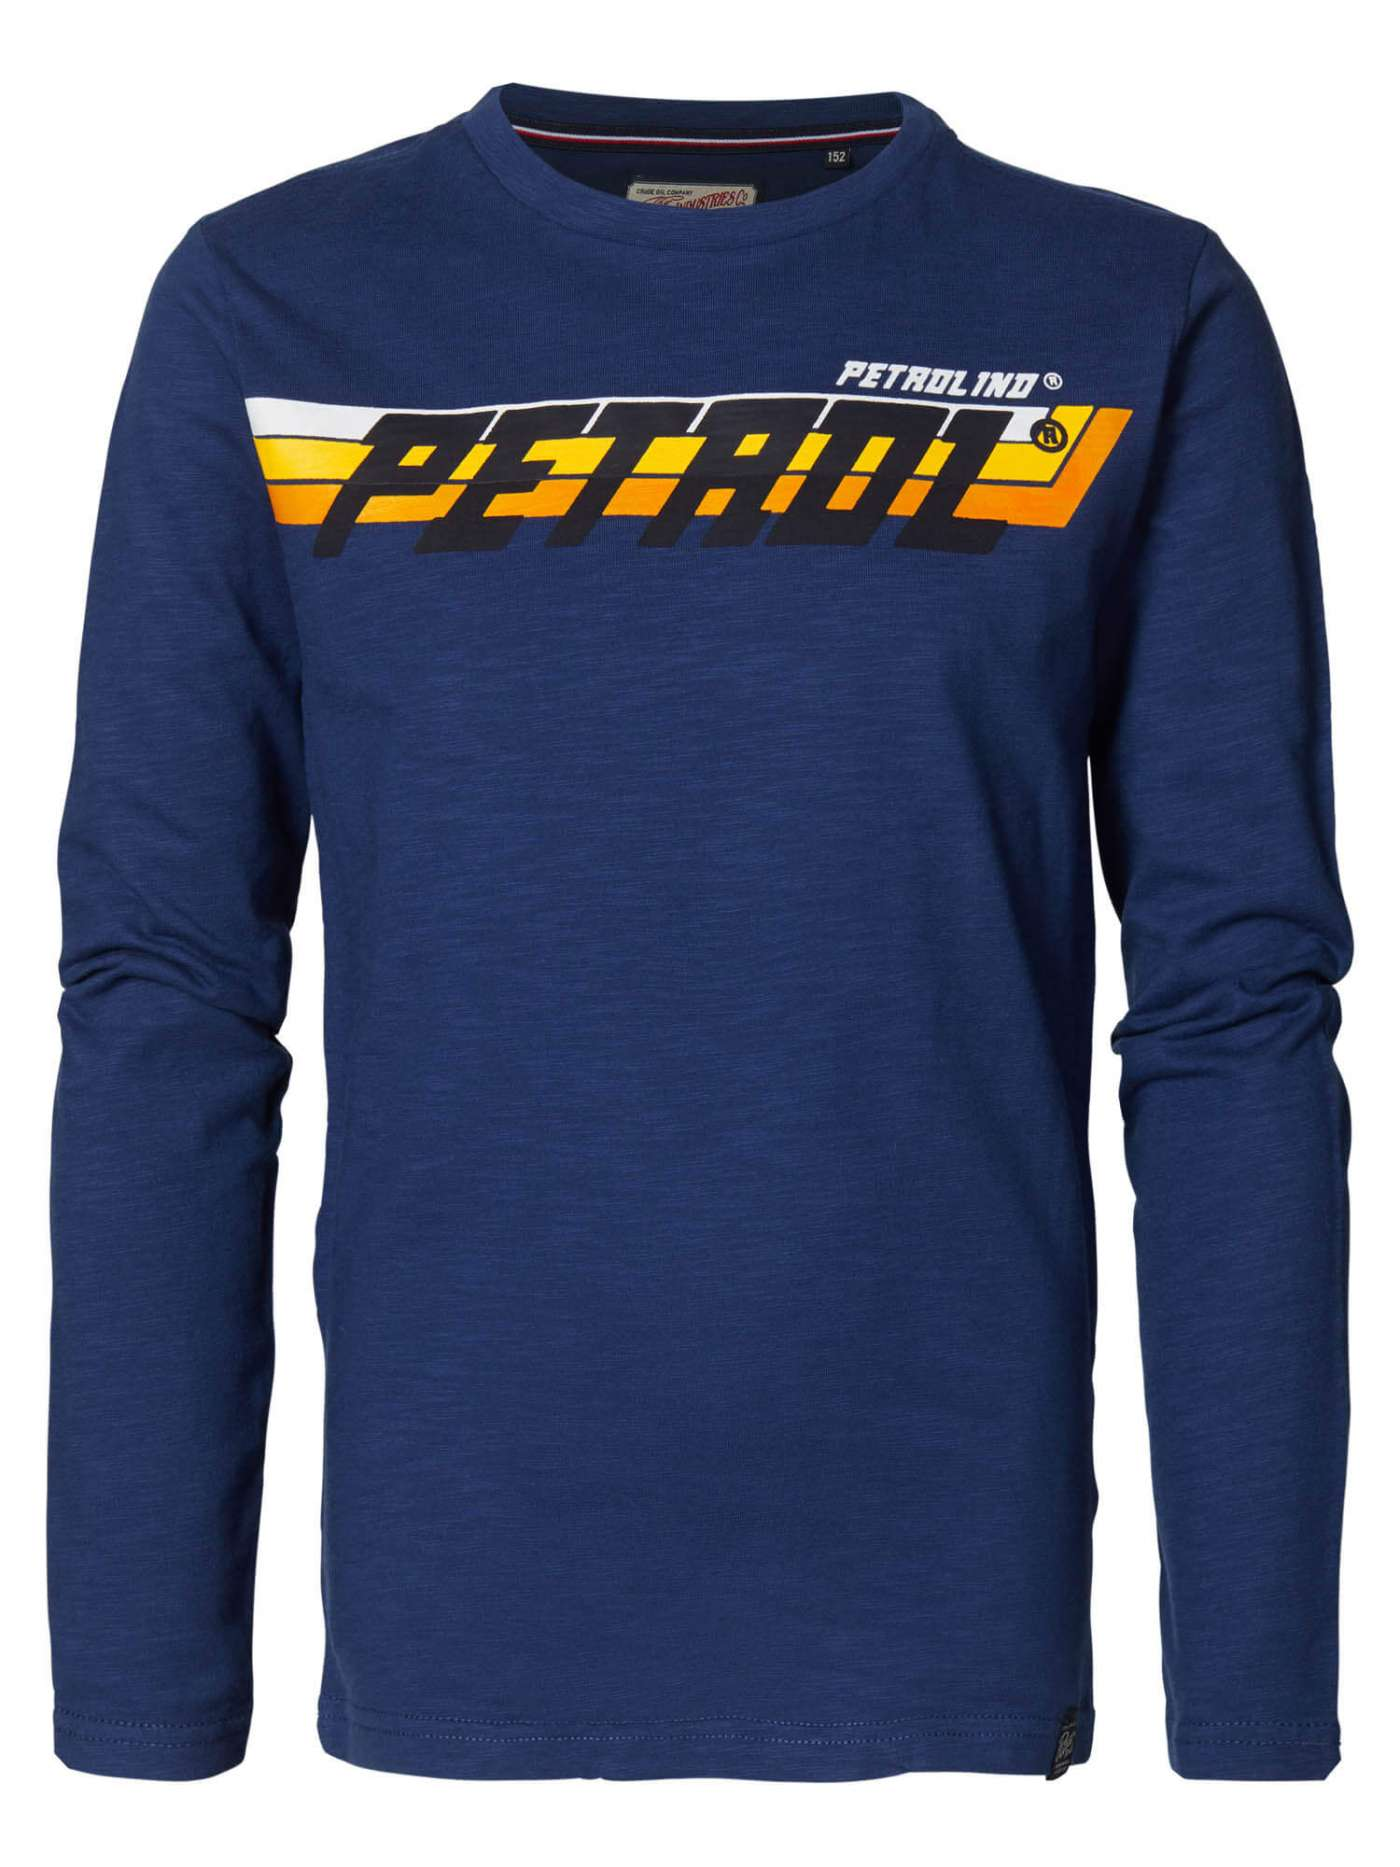 Long-sleeved shirt with racing details